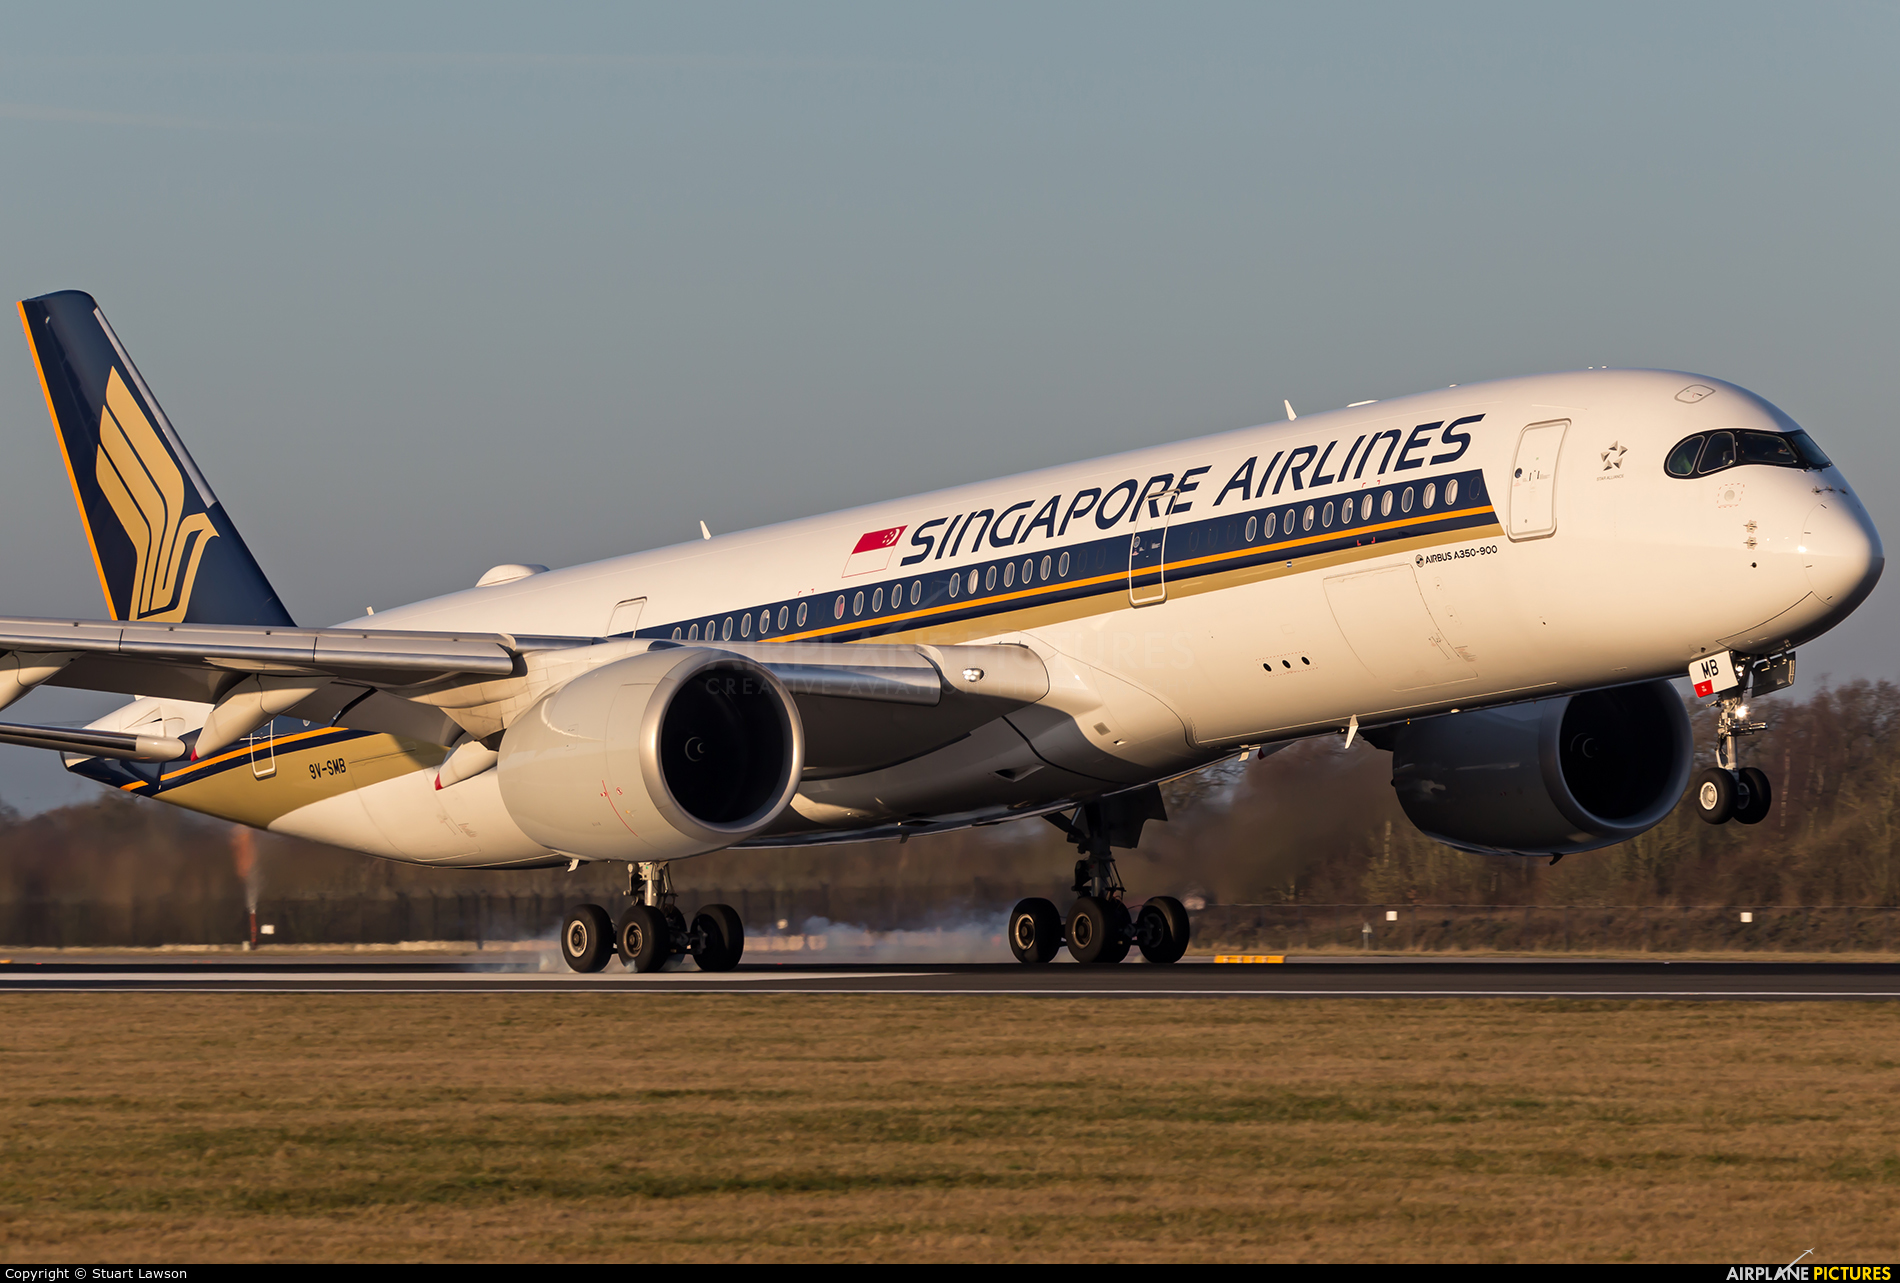 Singapore Airlines 9V-SMB aircraft at Manchester